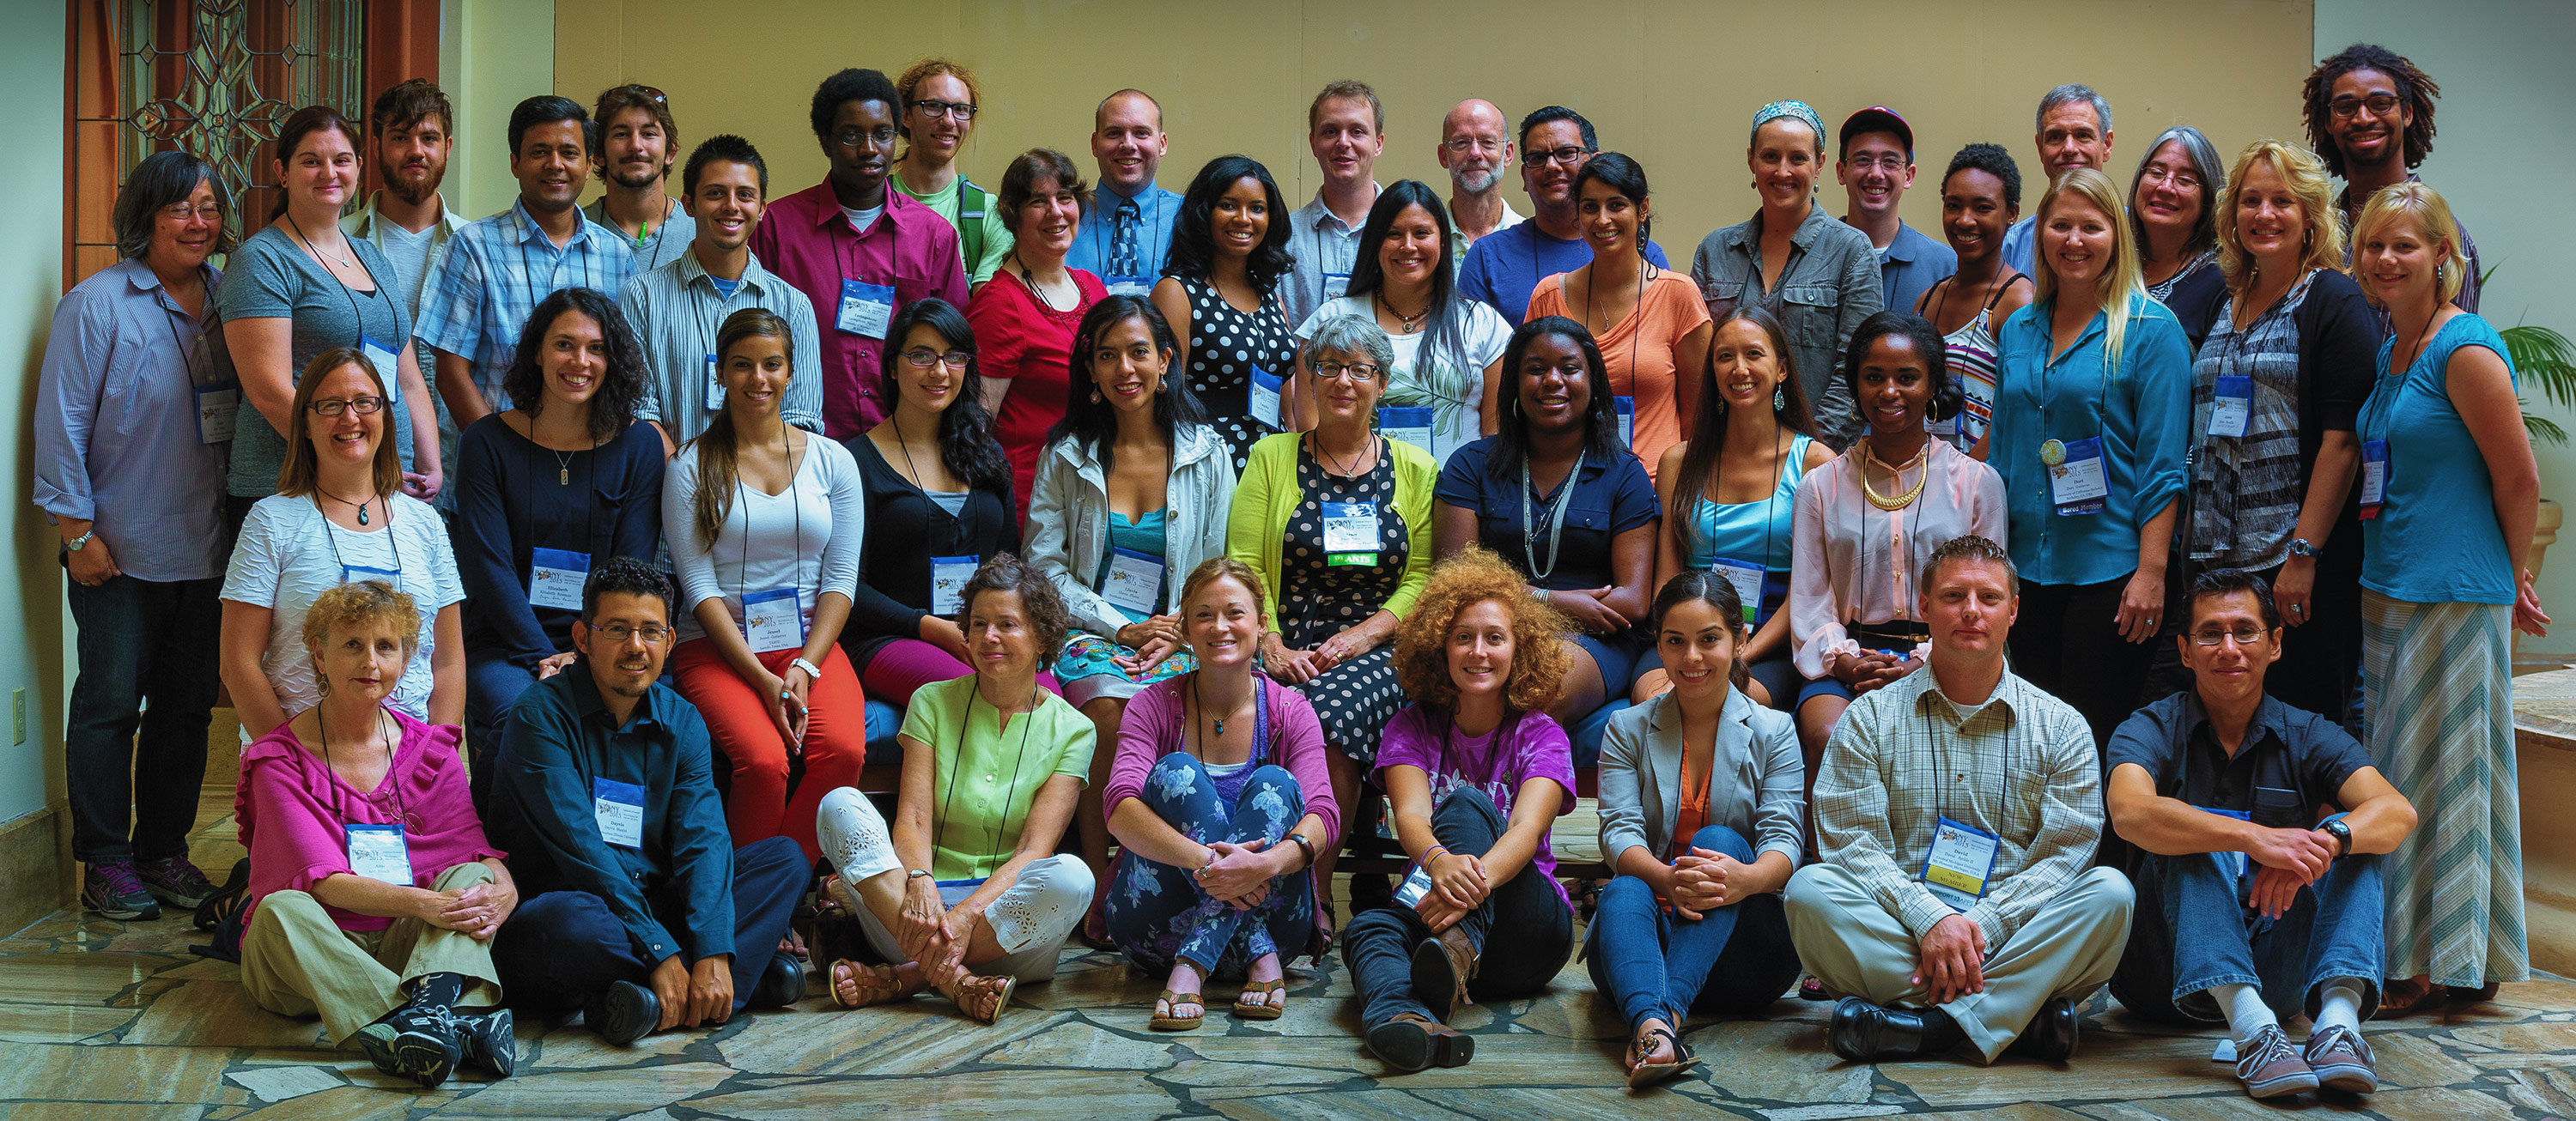 Students and mentors from across the U.S. participated in the PLANTS Grant program in New Orleans this July. Dr. Nina Baghai-Riding, professor of biology and environmental science at Delta State, has been a leading mentor for three years.